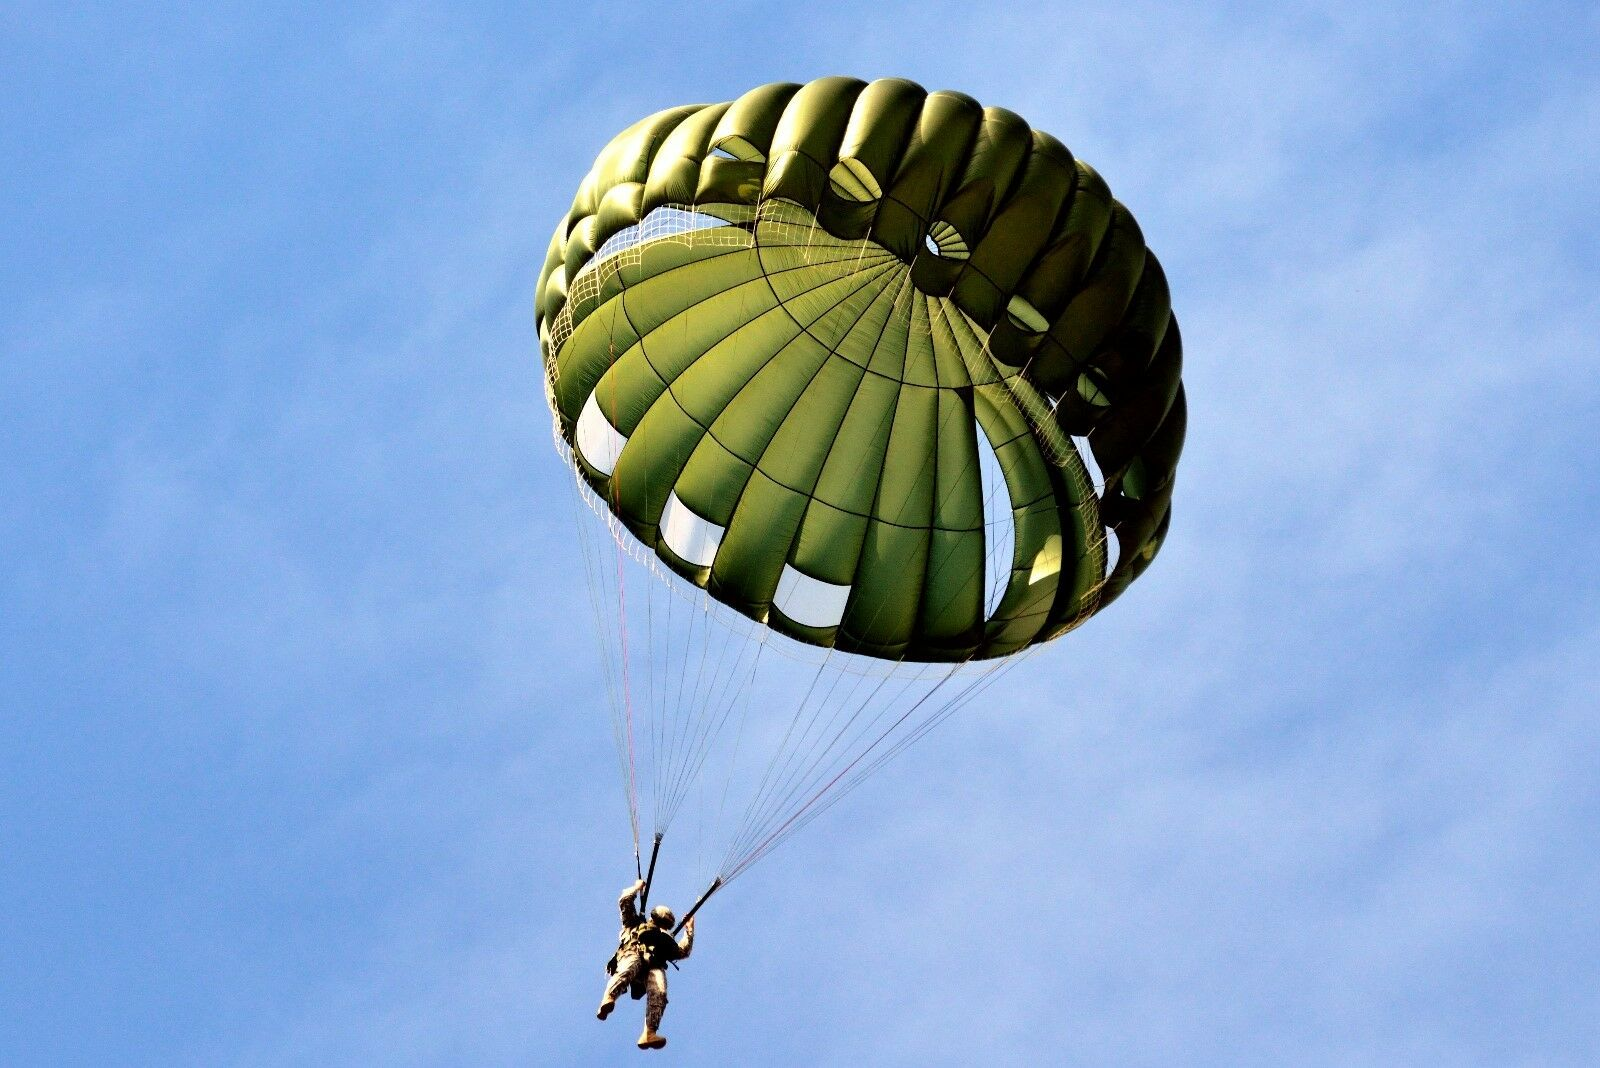 SF-10A Complete Parachute System, Airworthy,  inspected by a Master Rigger